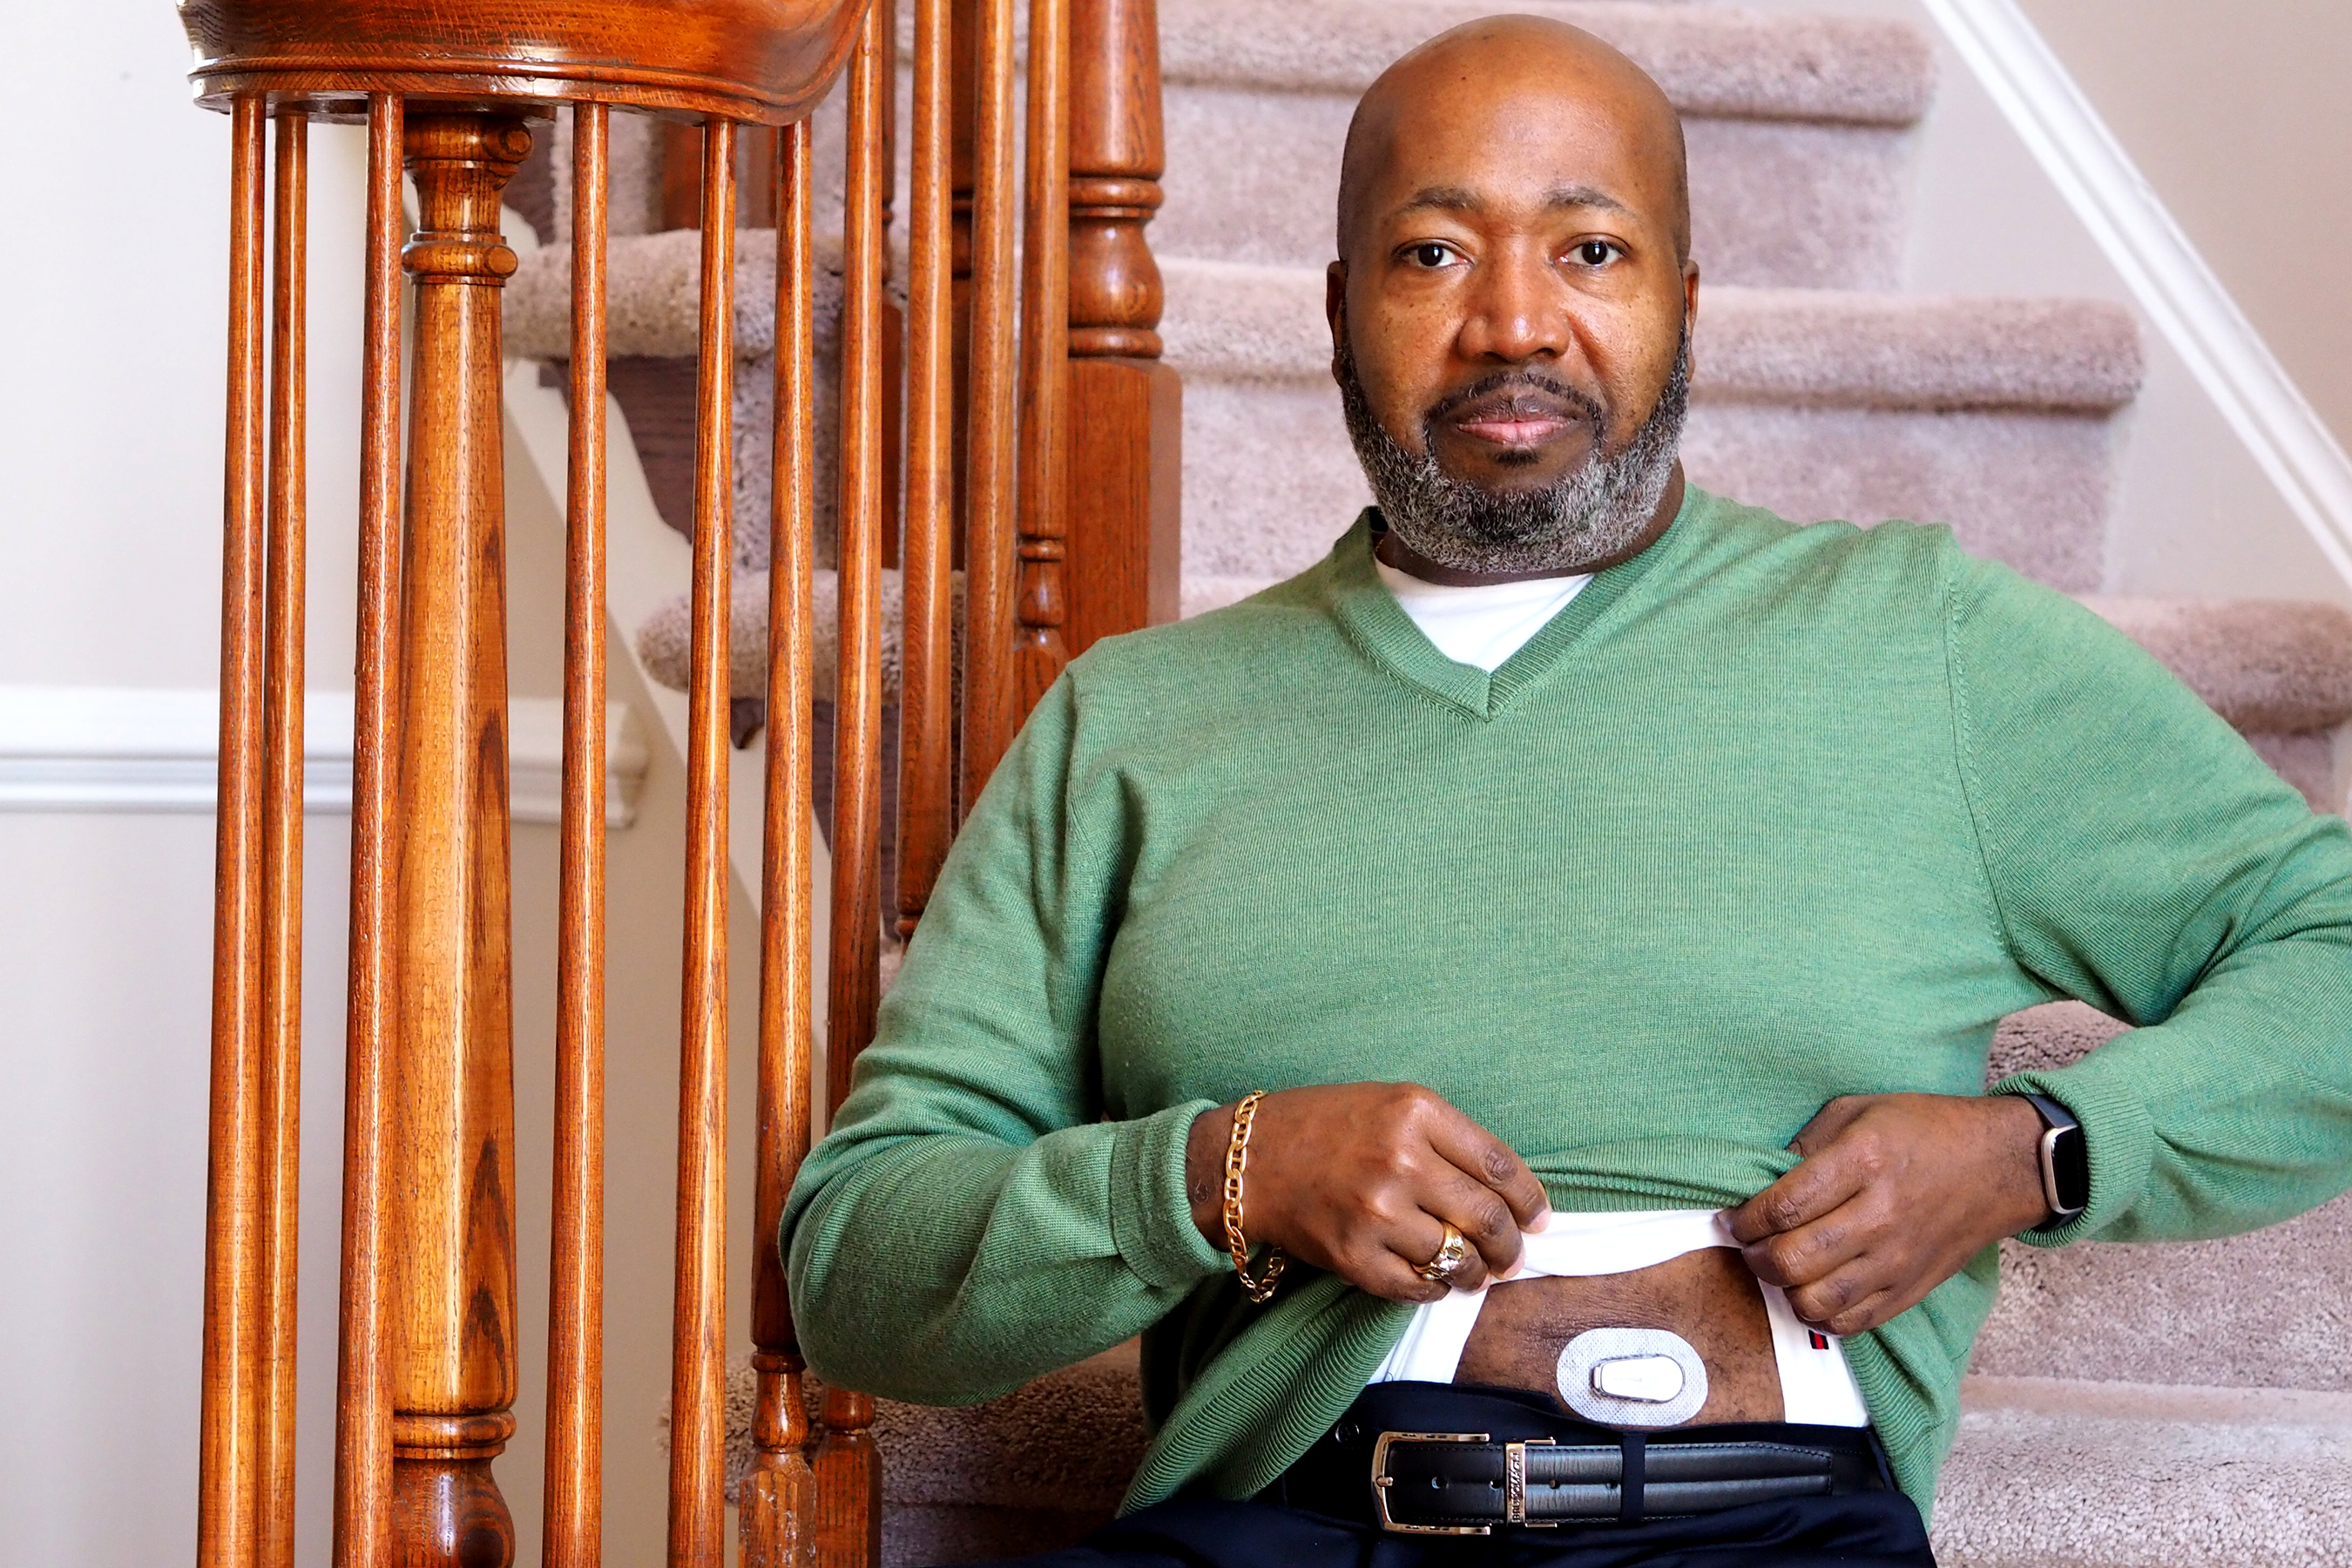 Trevis Hall, of Fort Washington, Maryland, credits a continuous glucose monitor with helping him get his diabetes under control. Makers of the device say that the instant feedback provides a way to motivate healthier eating and exercise. But experts point out that the few studies on the monitors show conflicting results. (Lynne Shallcross/KHN)